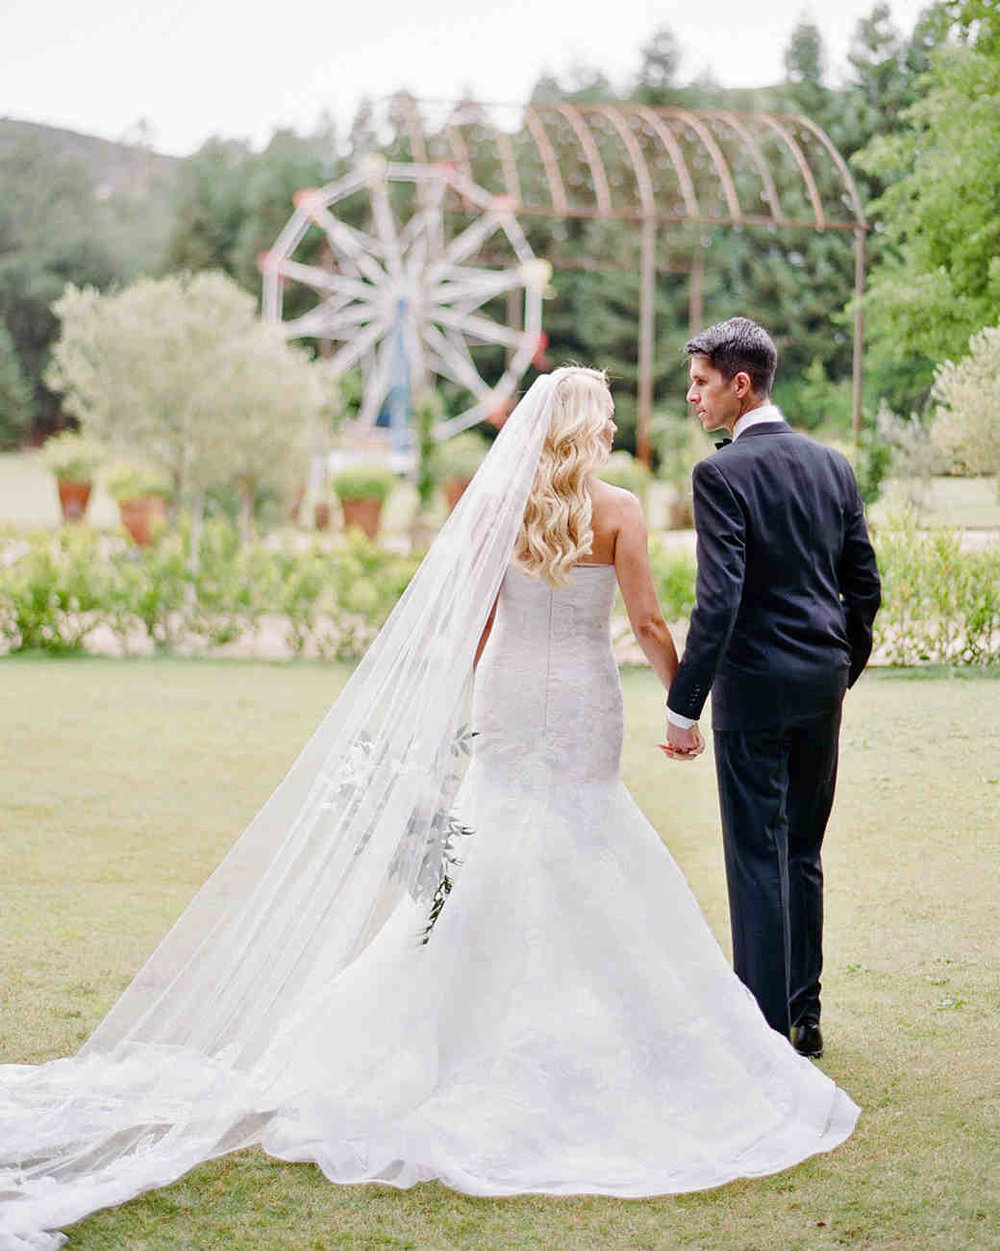 shannon-jon-wedding-couple-0124-6238579-0117_vert.jpg